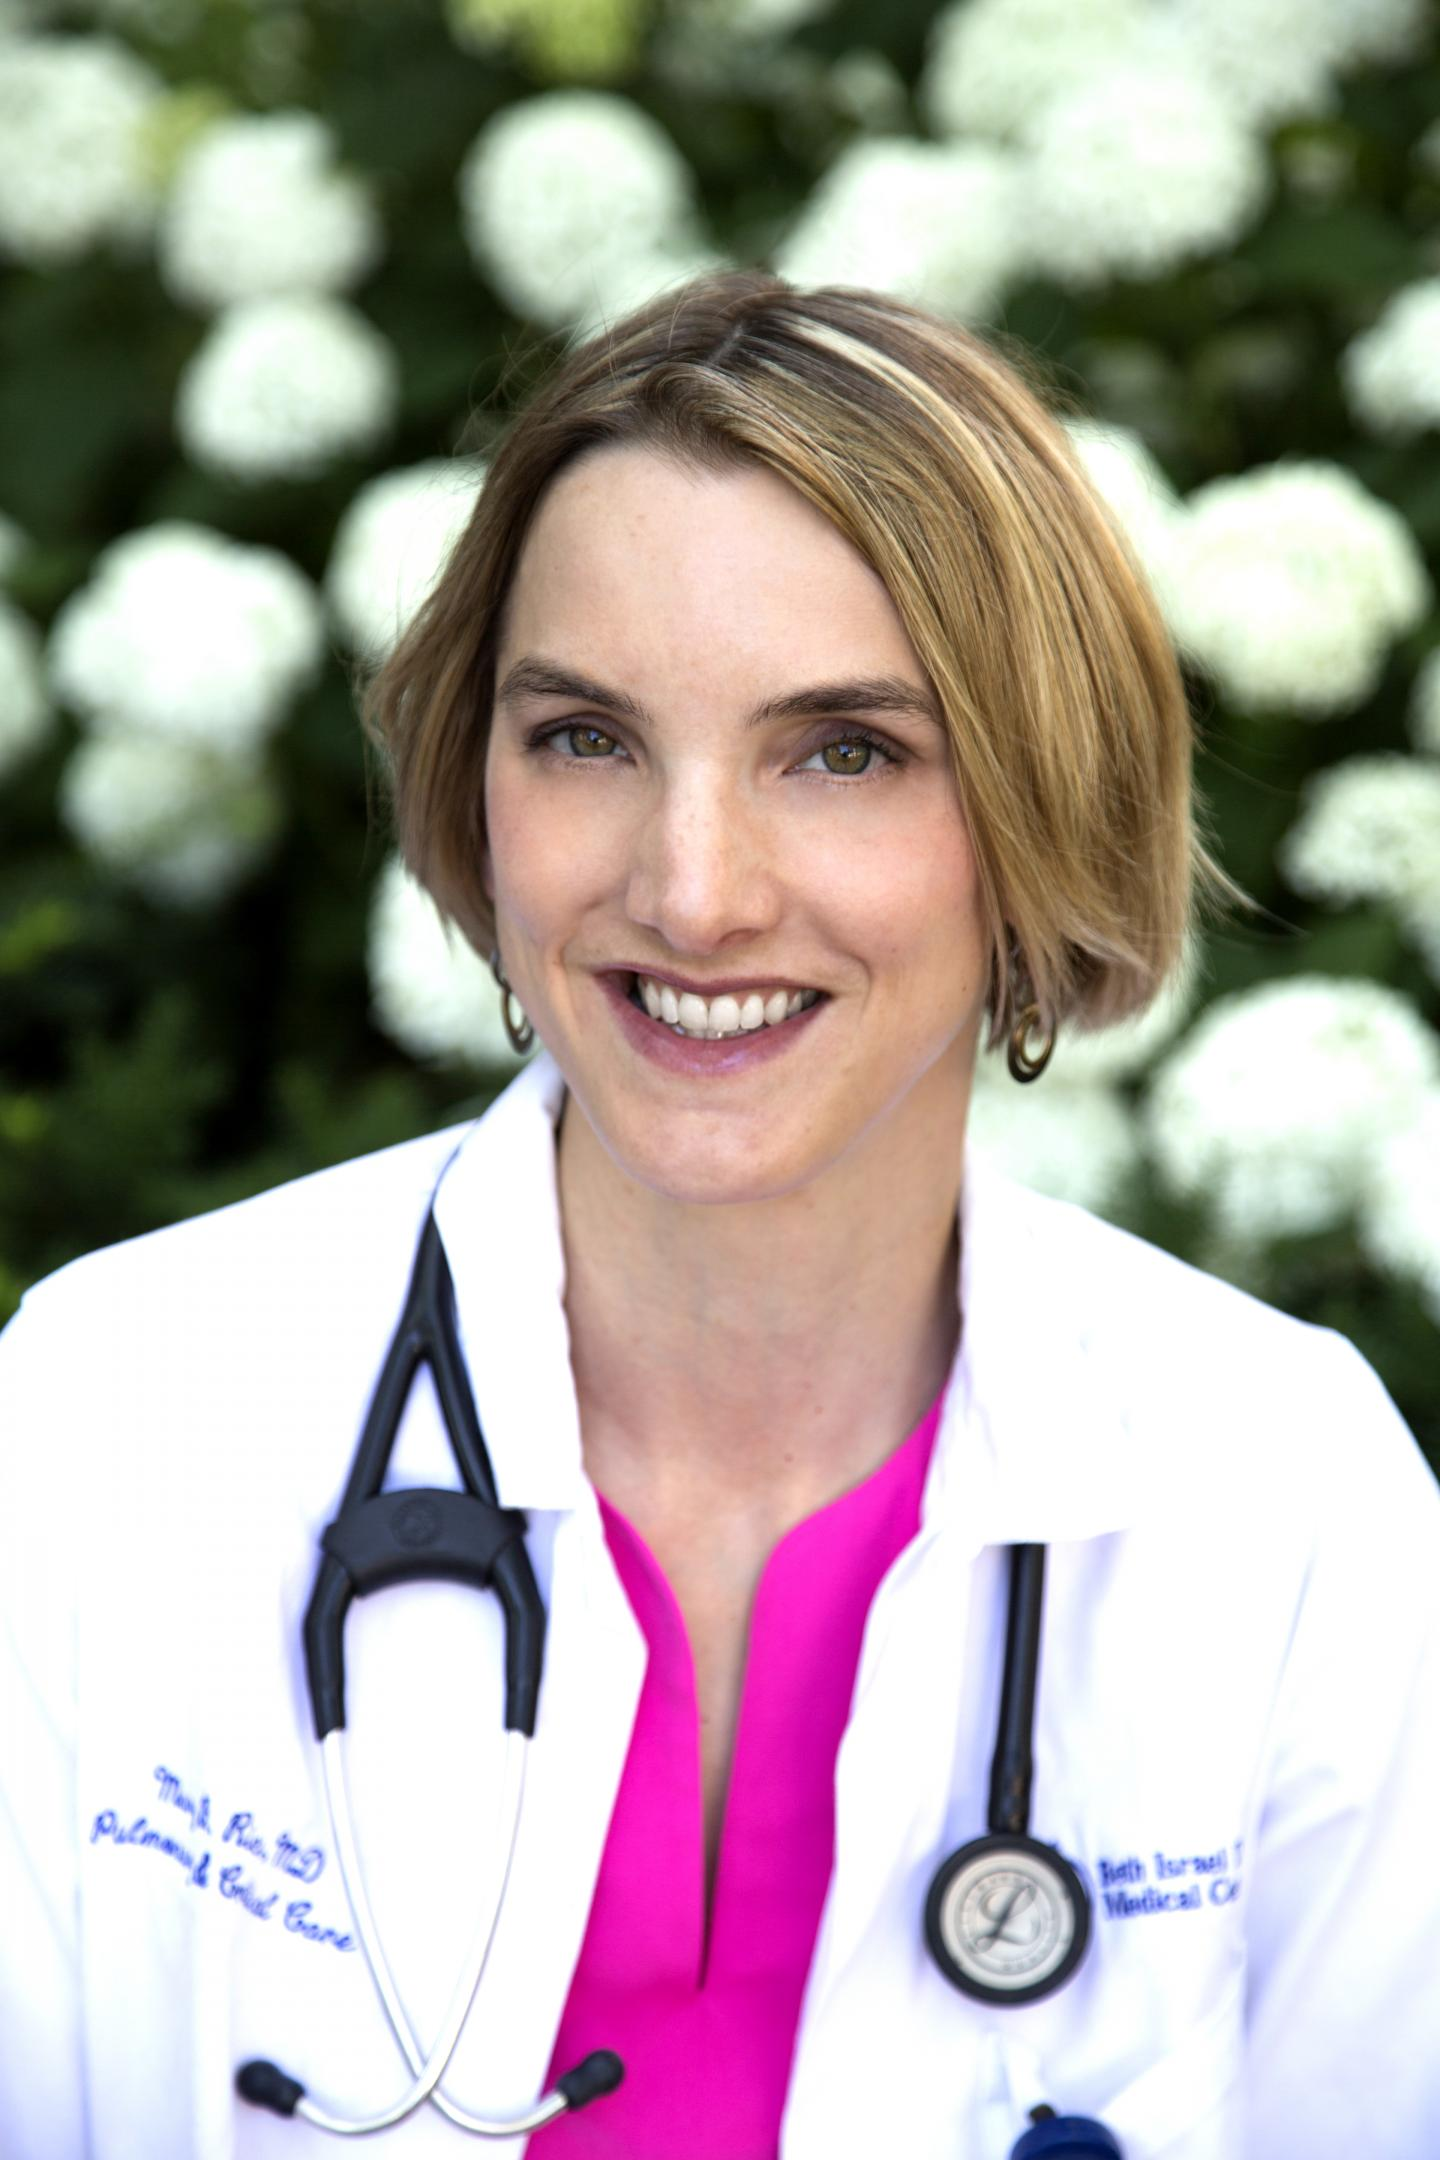 Mary B. Rice, M.D., MPH,  Beth Israel Deaconess Medical Center